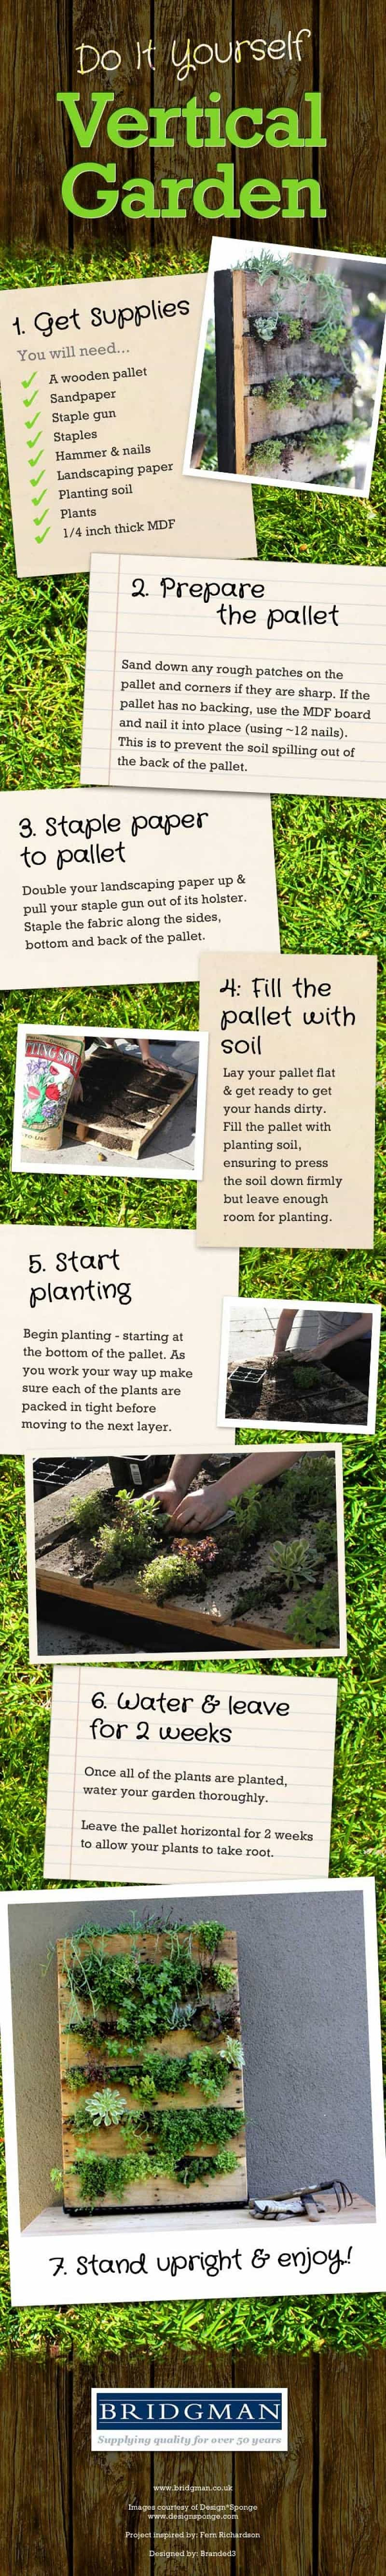 Do-it-yourself vertical garden infographic - Build your own vertical garden in 6 steps